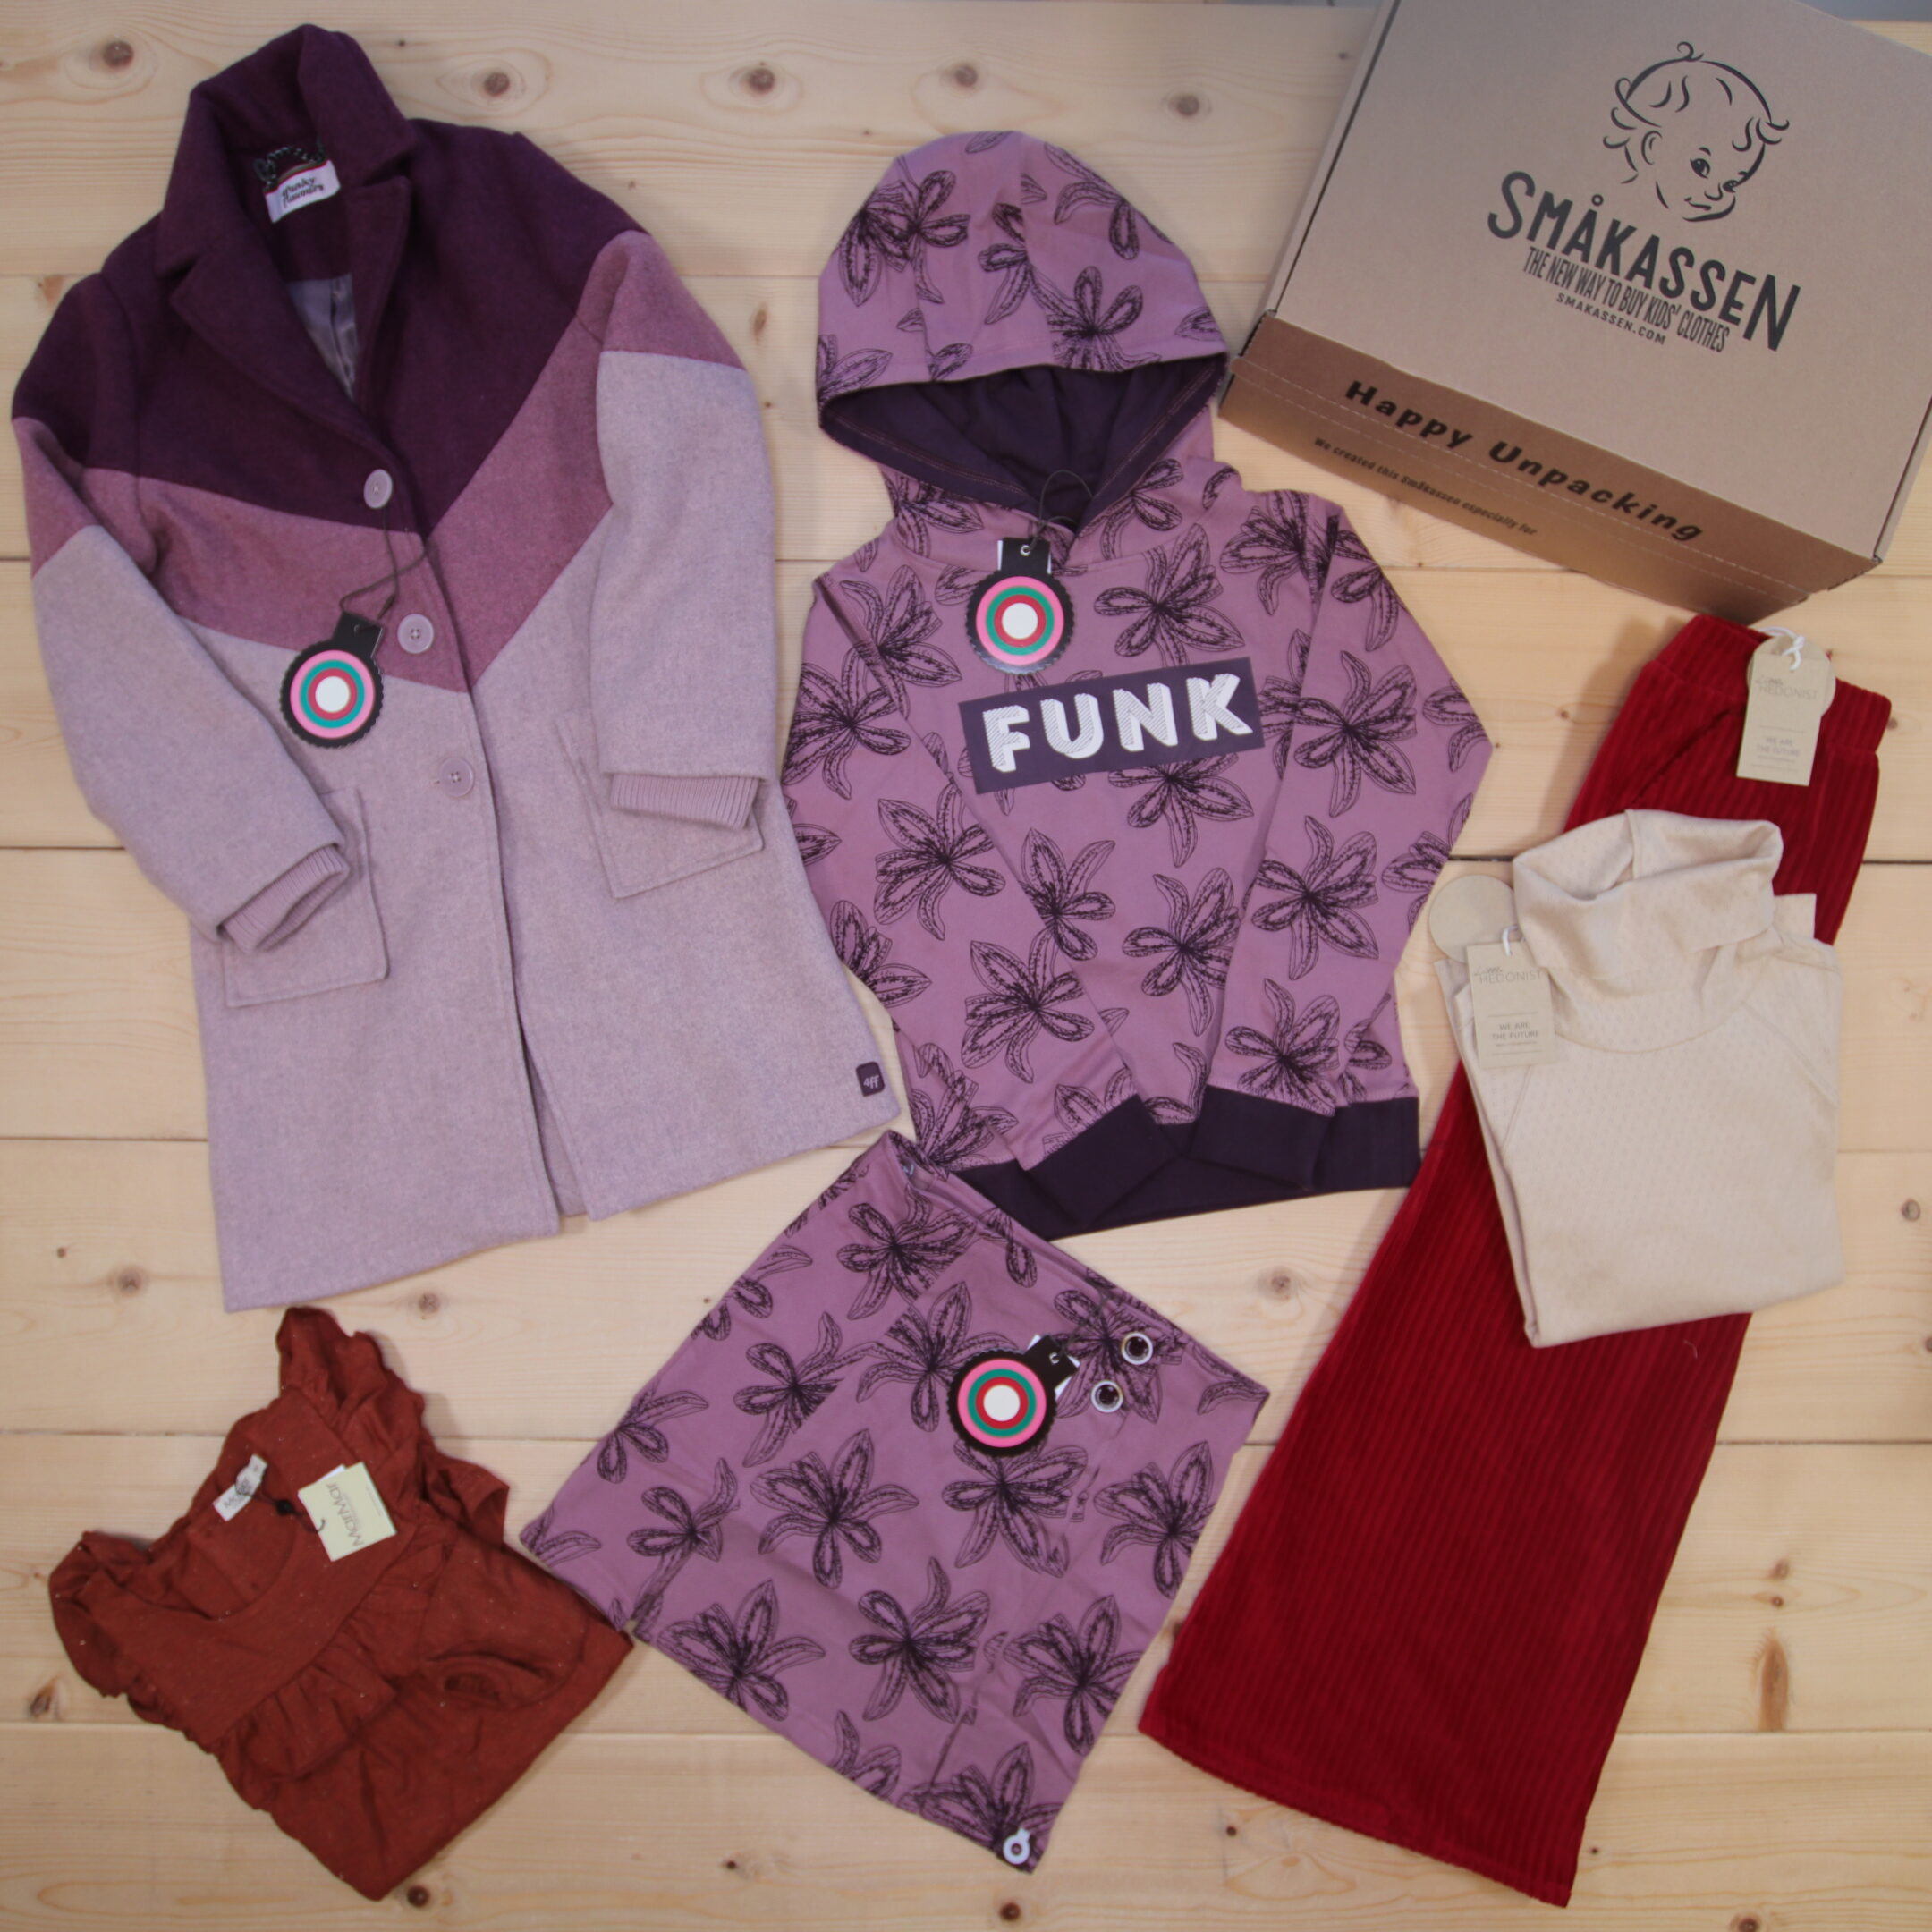 This is a 250 GBP* Småkassen that we prepared for a girl  in the styles cool and colorful in size 140